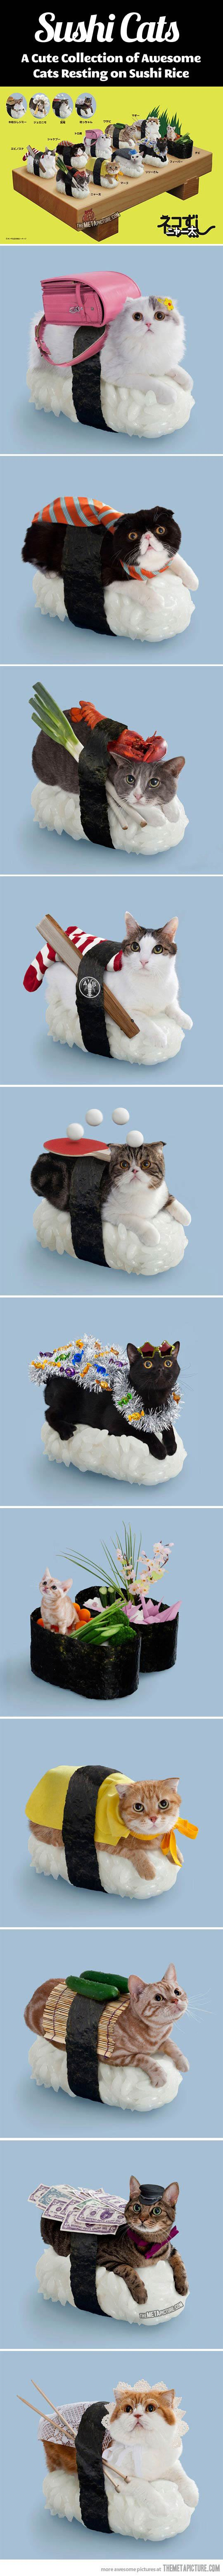 Sushi Cats… Some people have waaaay too much time on their hands.  But did it make me laugh : )  Yep